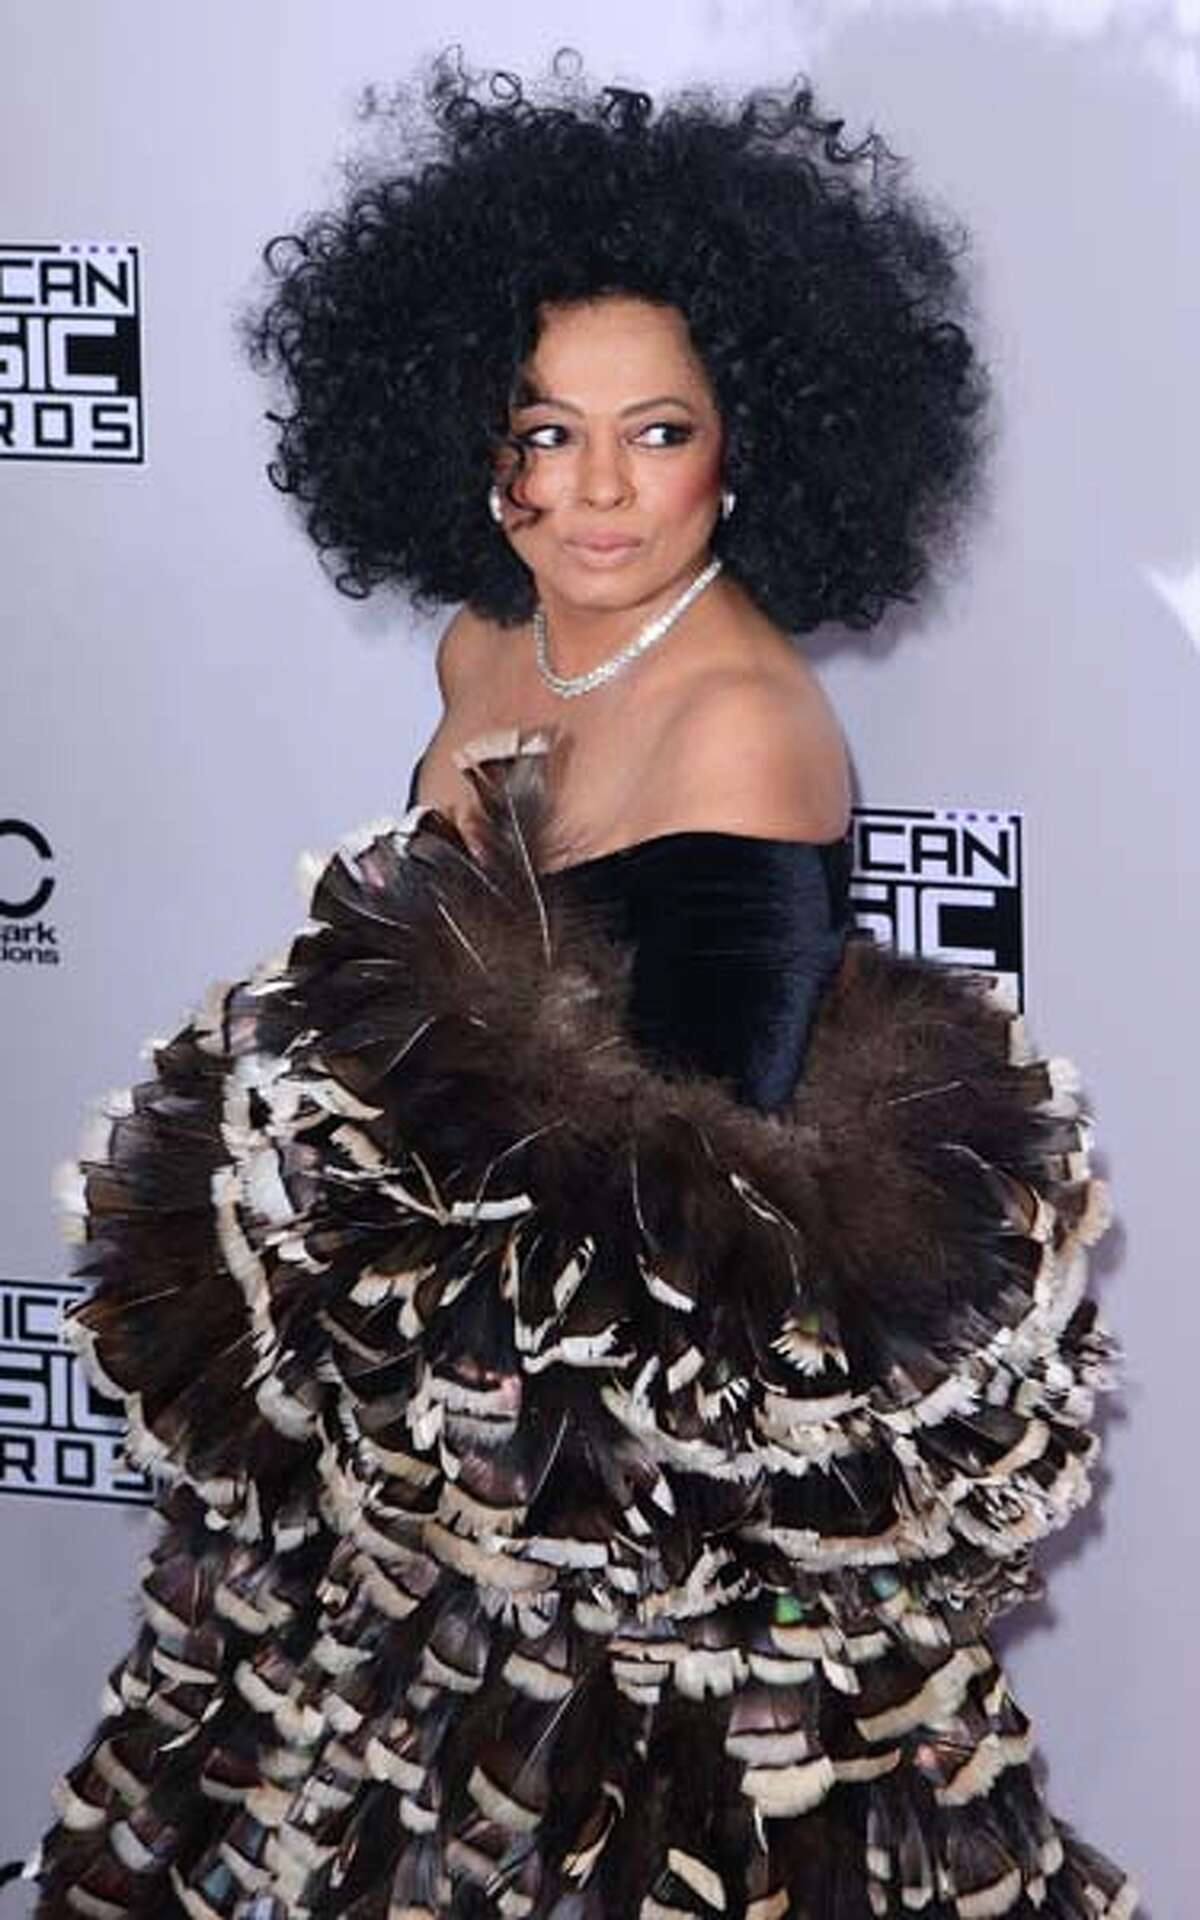 Diana Ross is roasting seven turkeys for Thanksgiving, and she's the only person who is allowed to humiliate her turkeys first by wearing them to a black tie event.